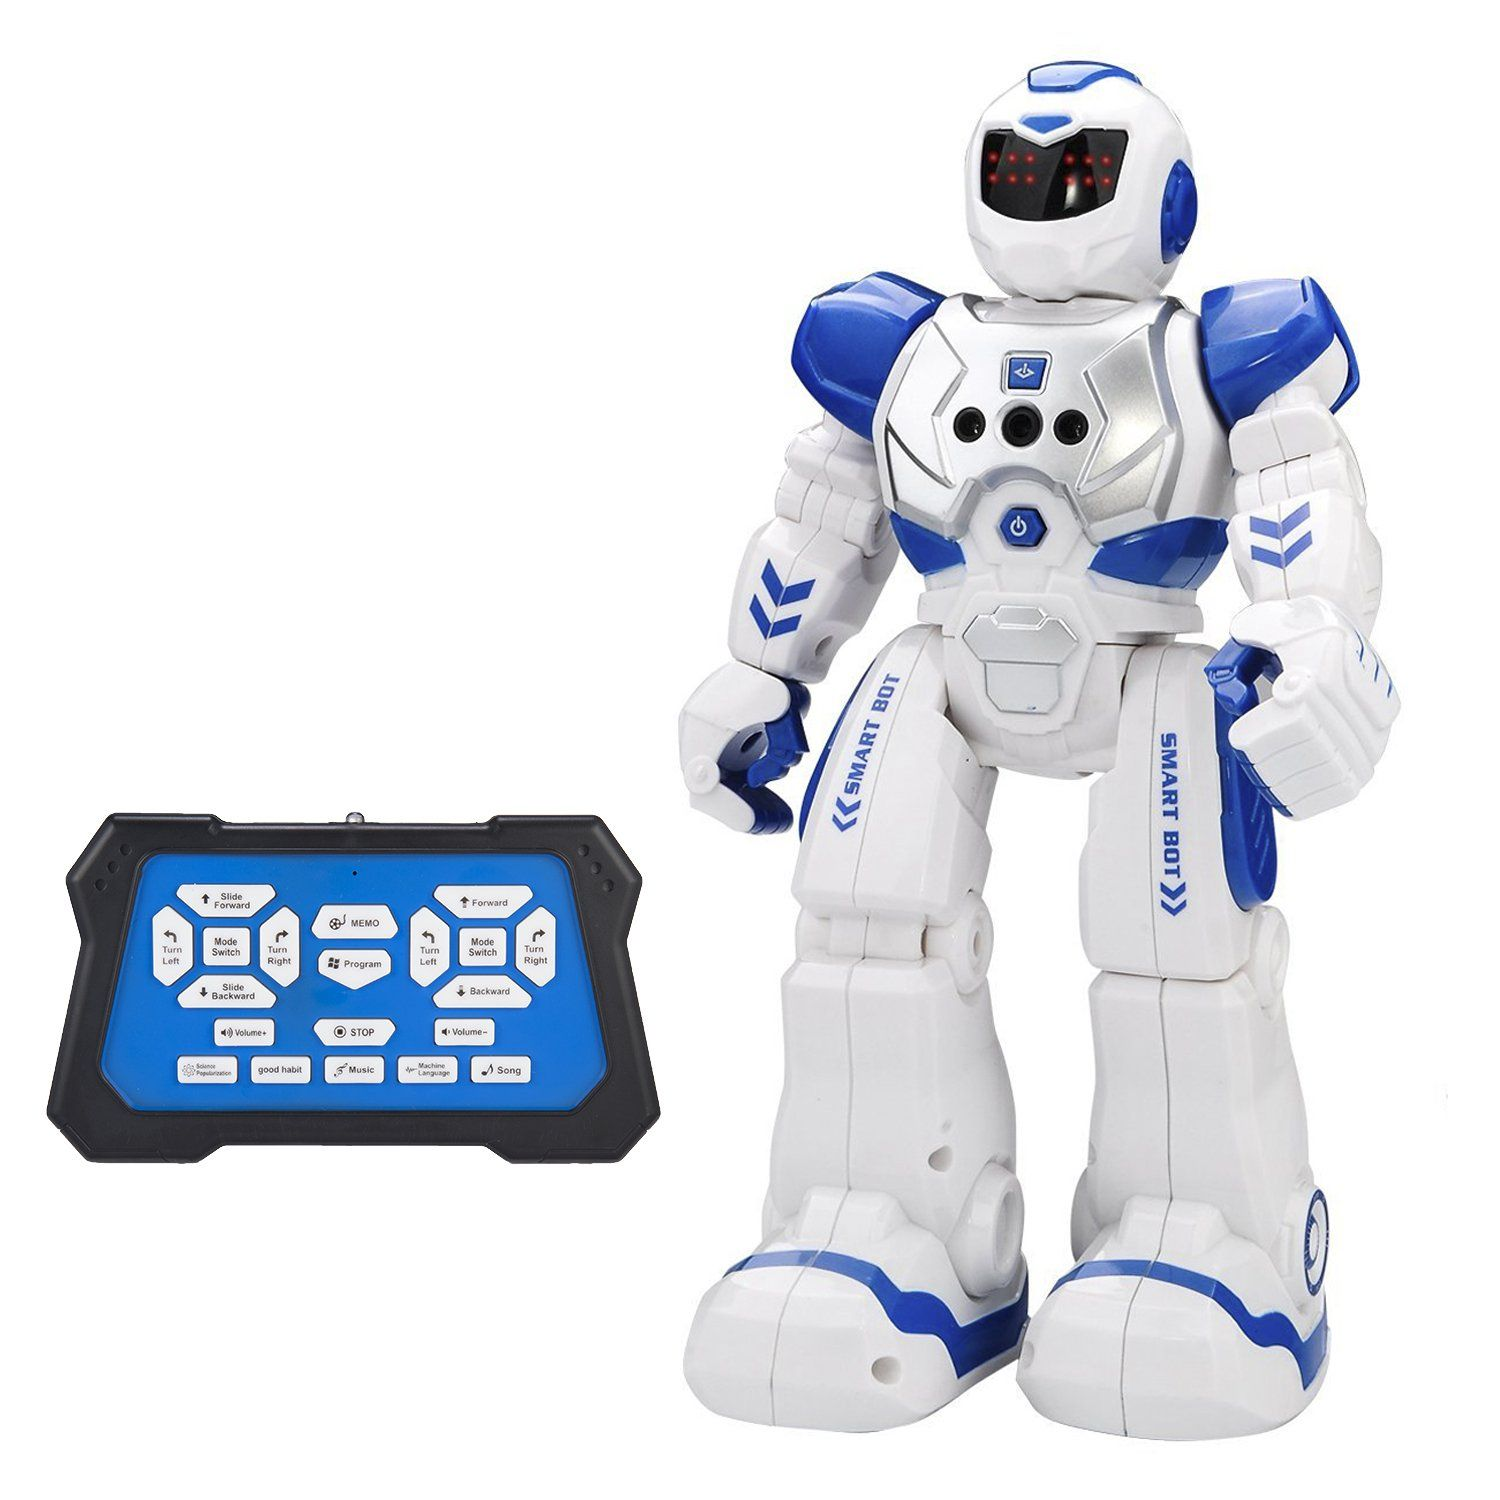 Remote Control Robot Kids Toys CHOTOP RC Humanoid Robot Kit for